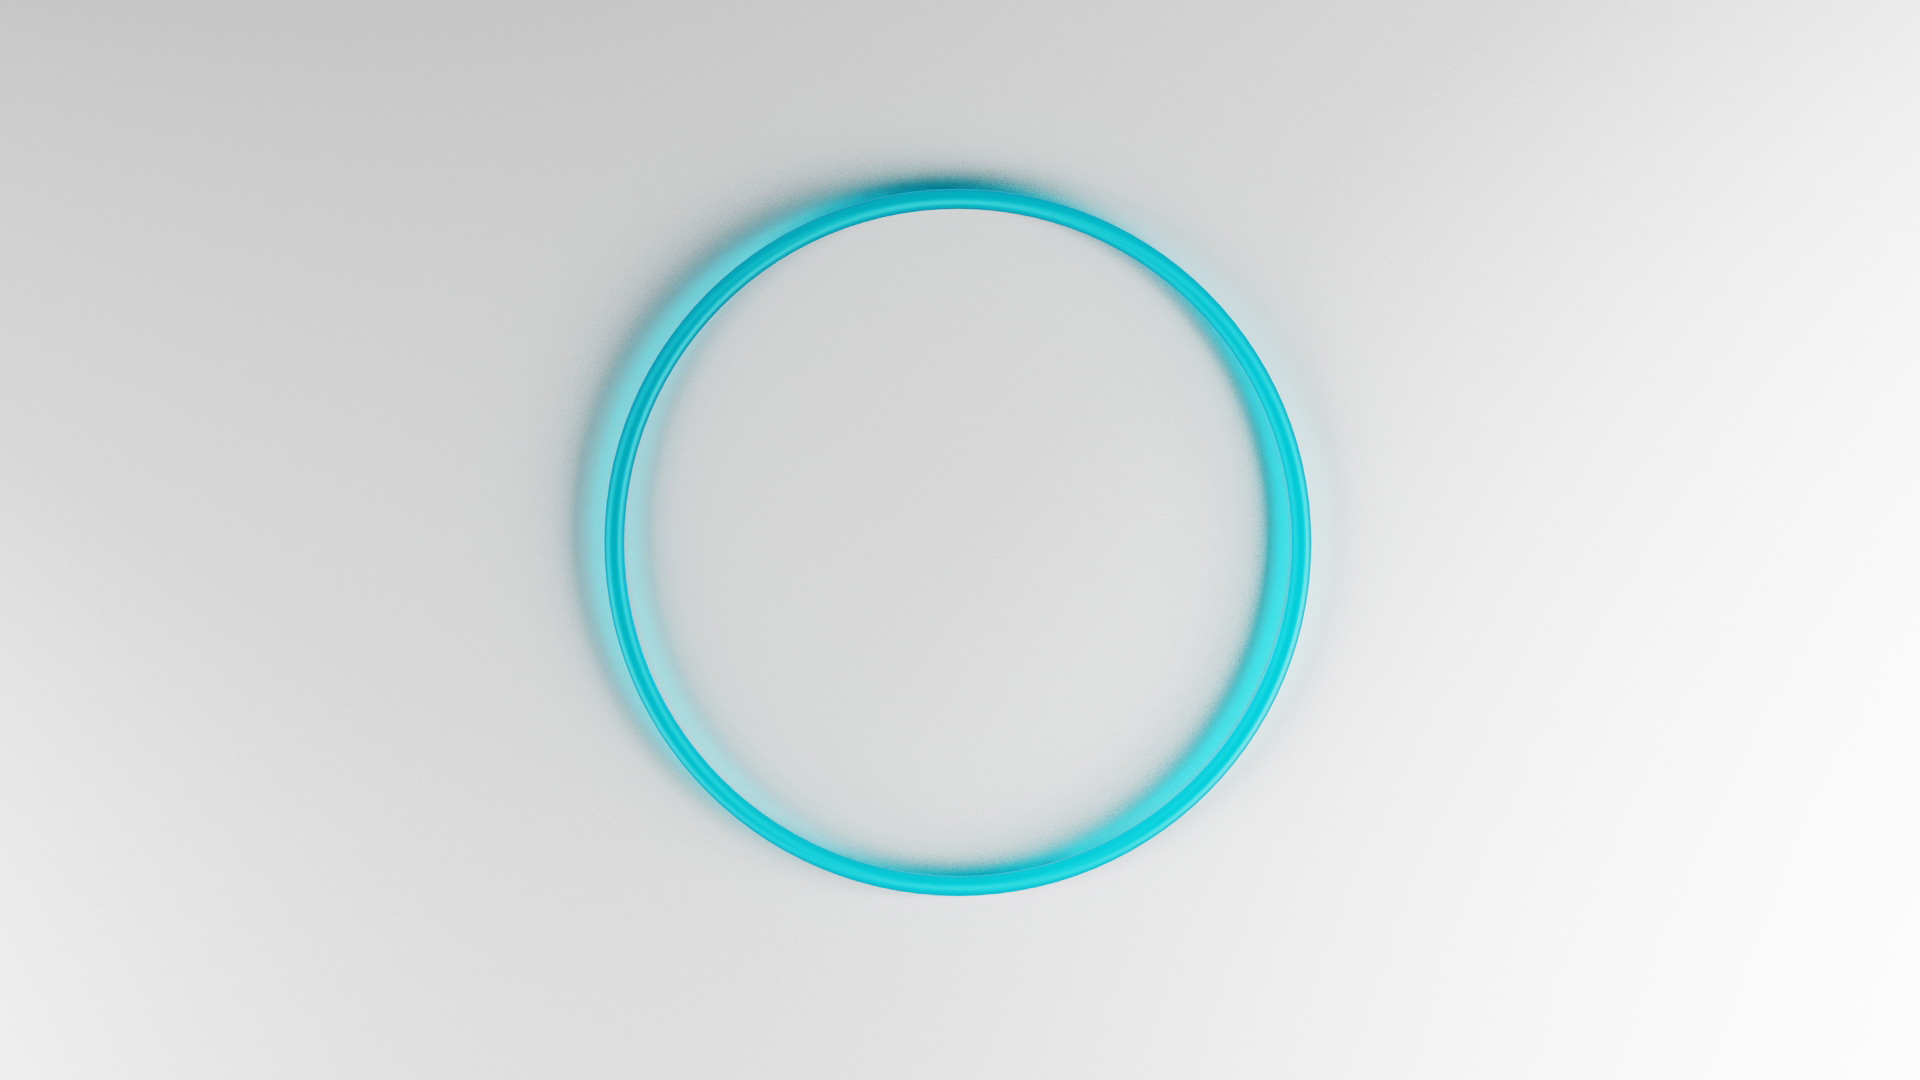 Simple Circle Wallpaper